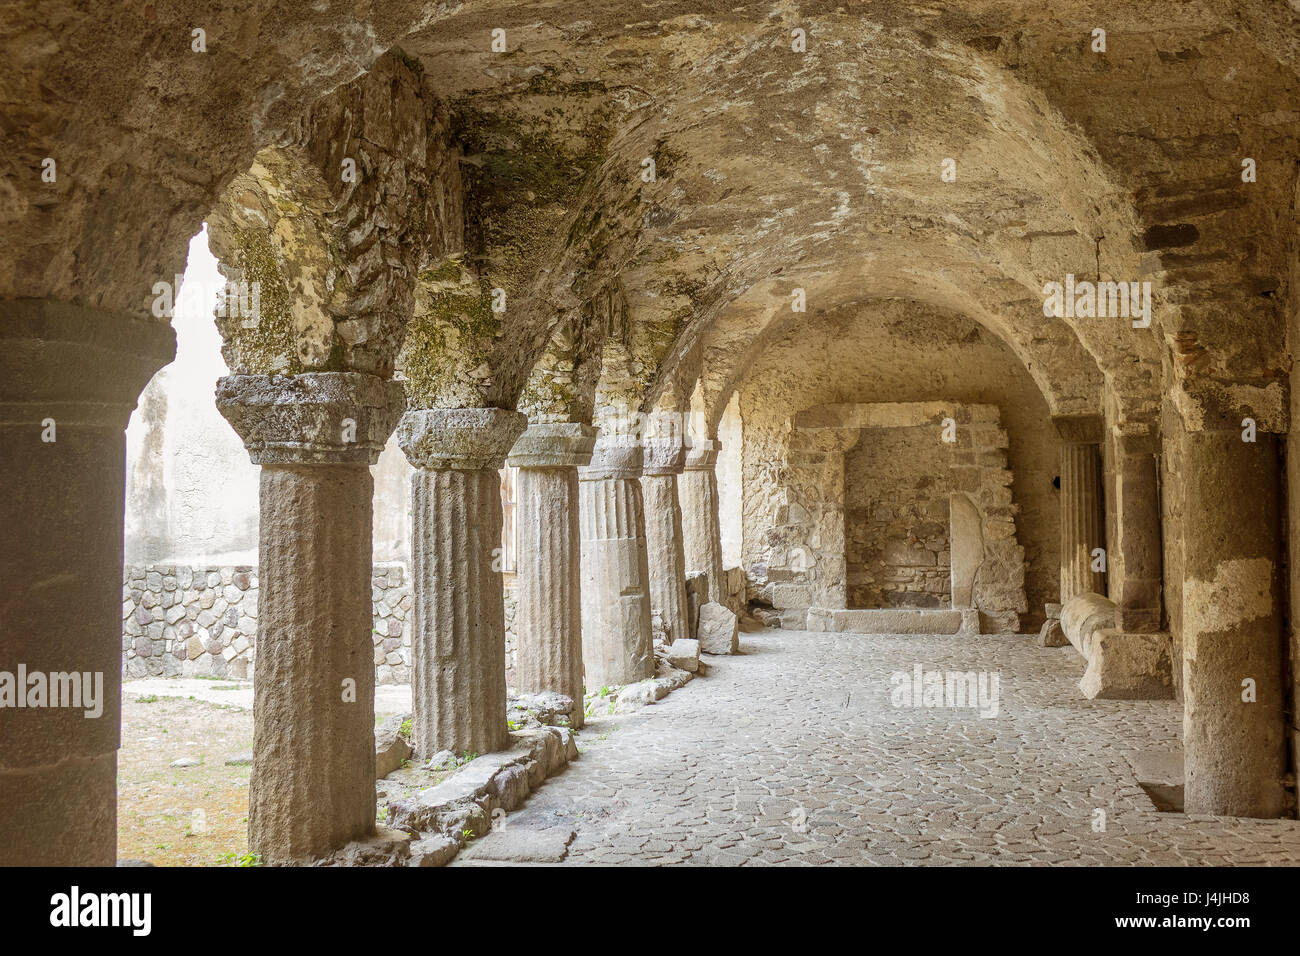 Italy, Aeolian Islands, Lipari, cathedral cloisters - Stock Image